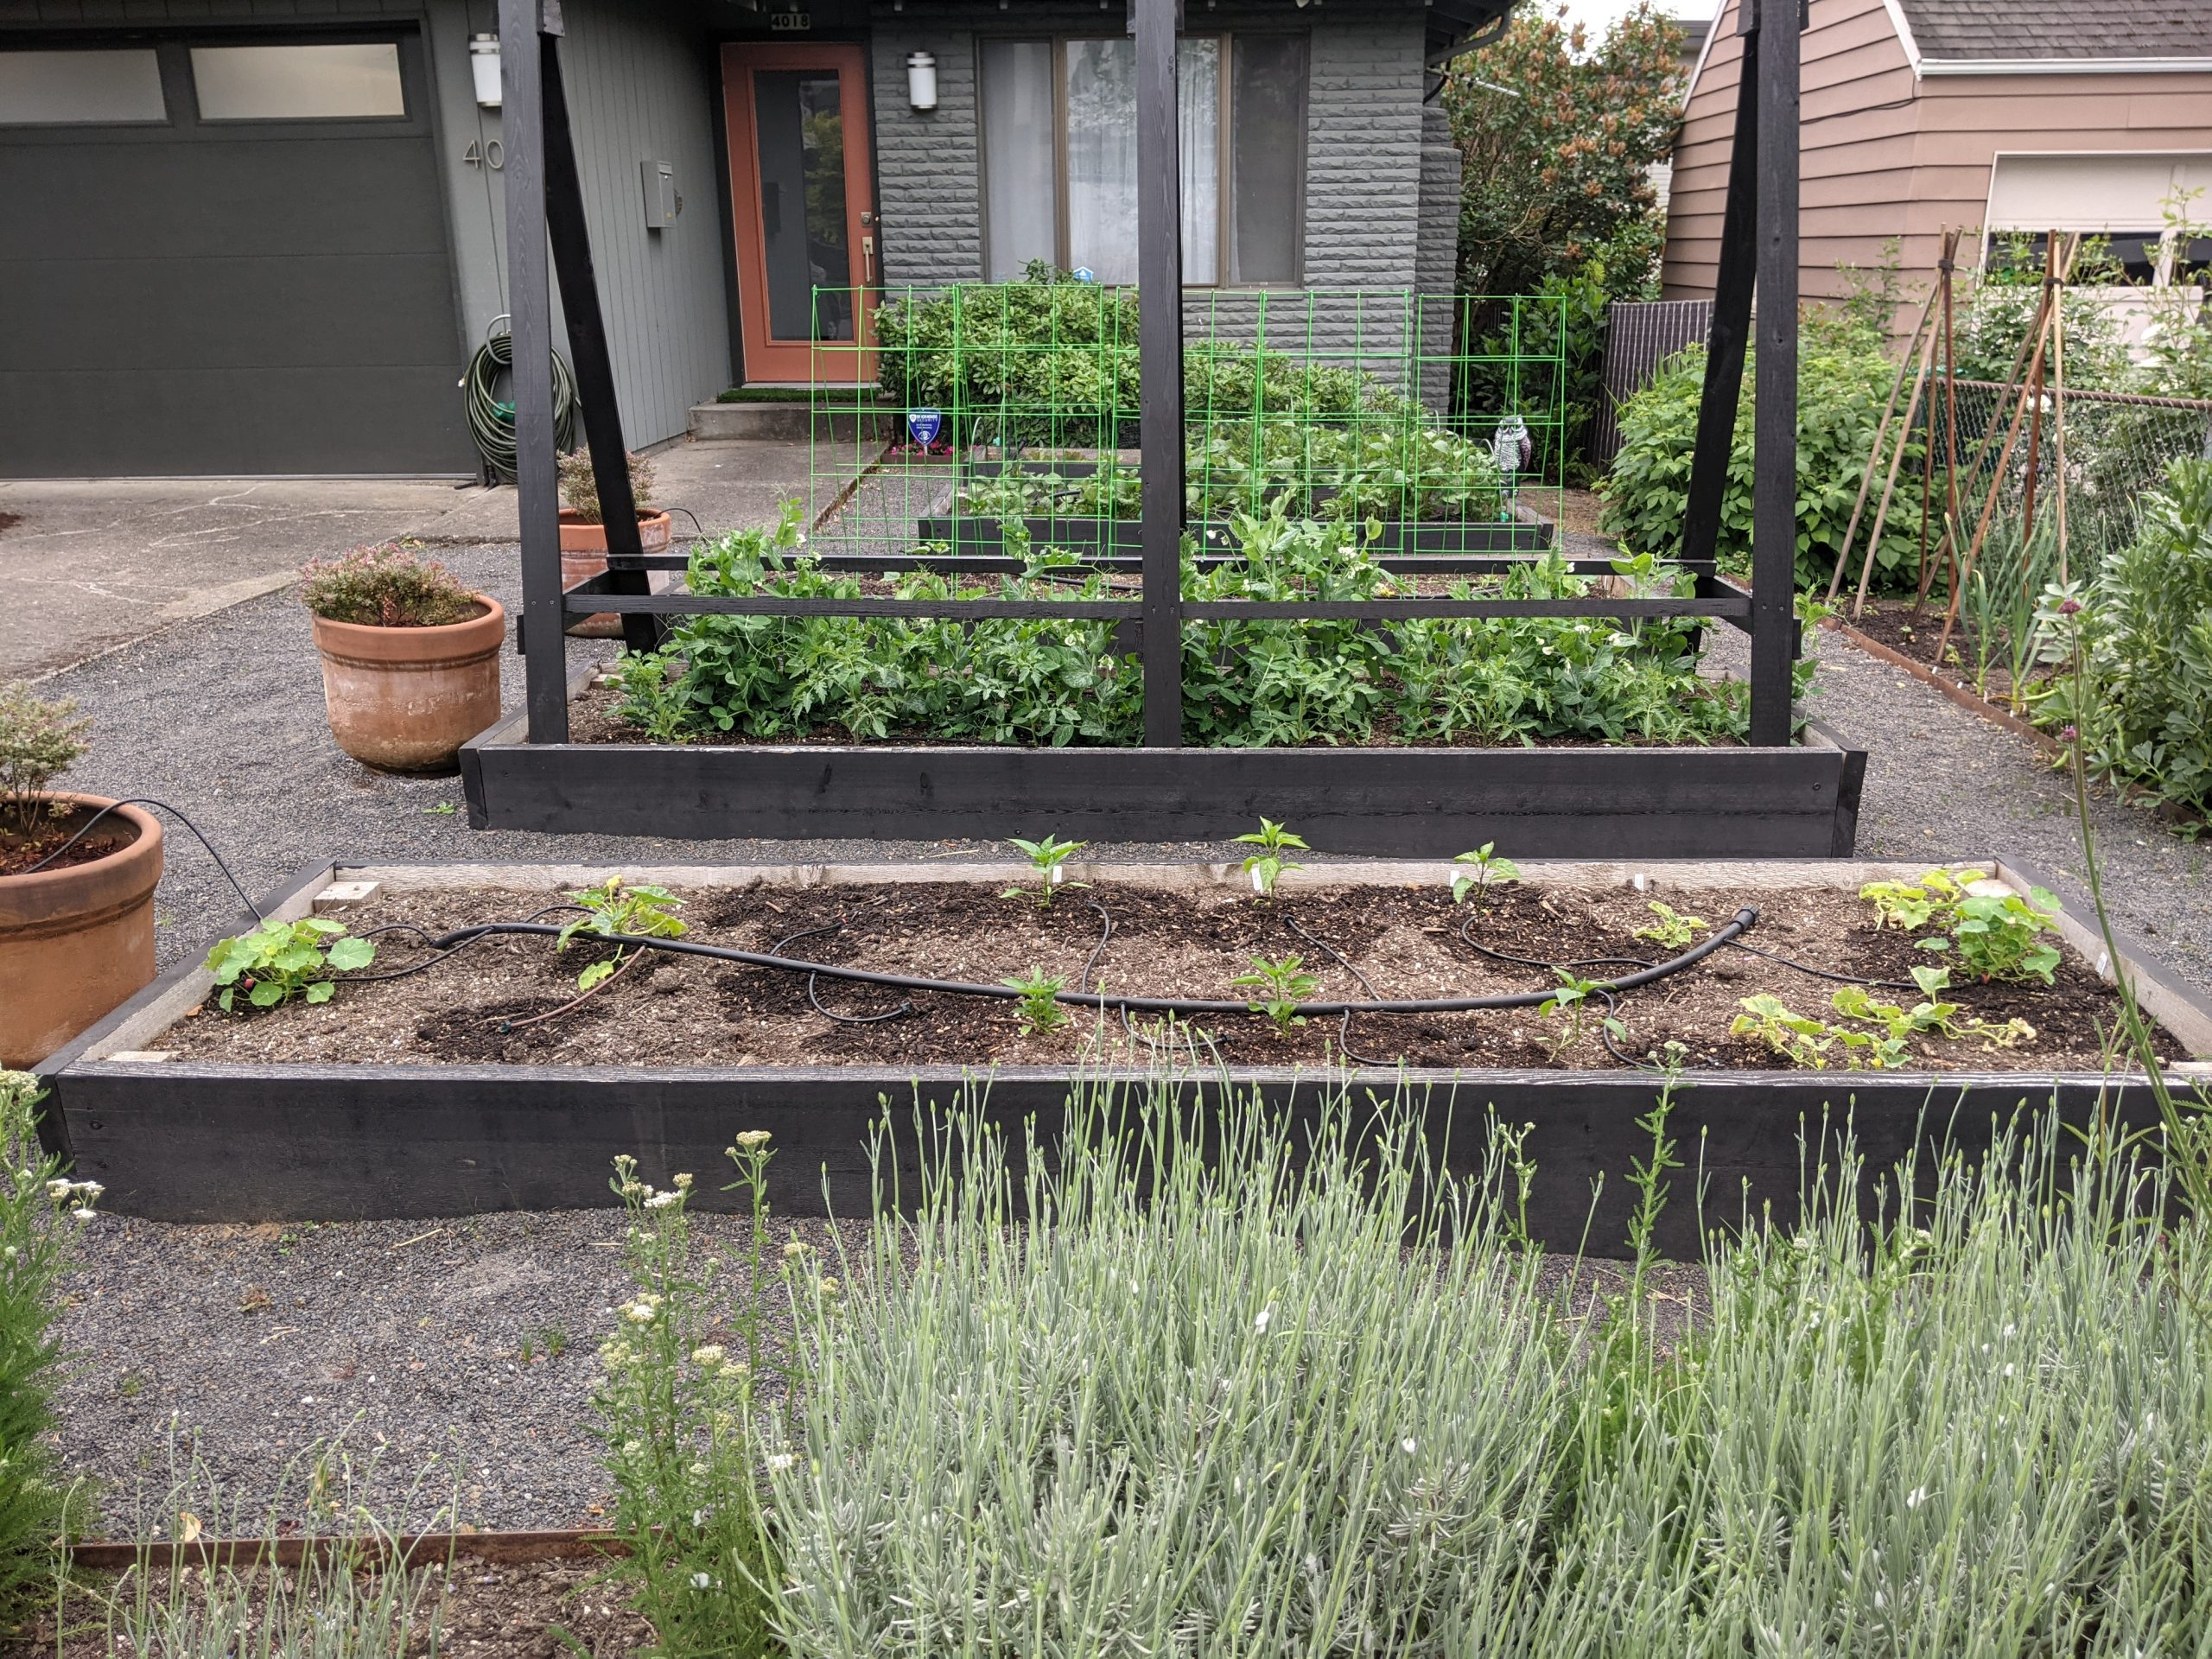 Large raised beds in front of gray house with orange door